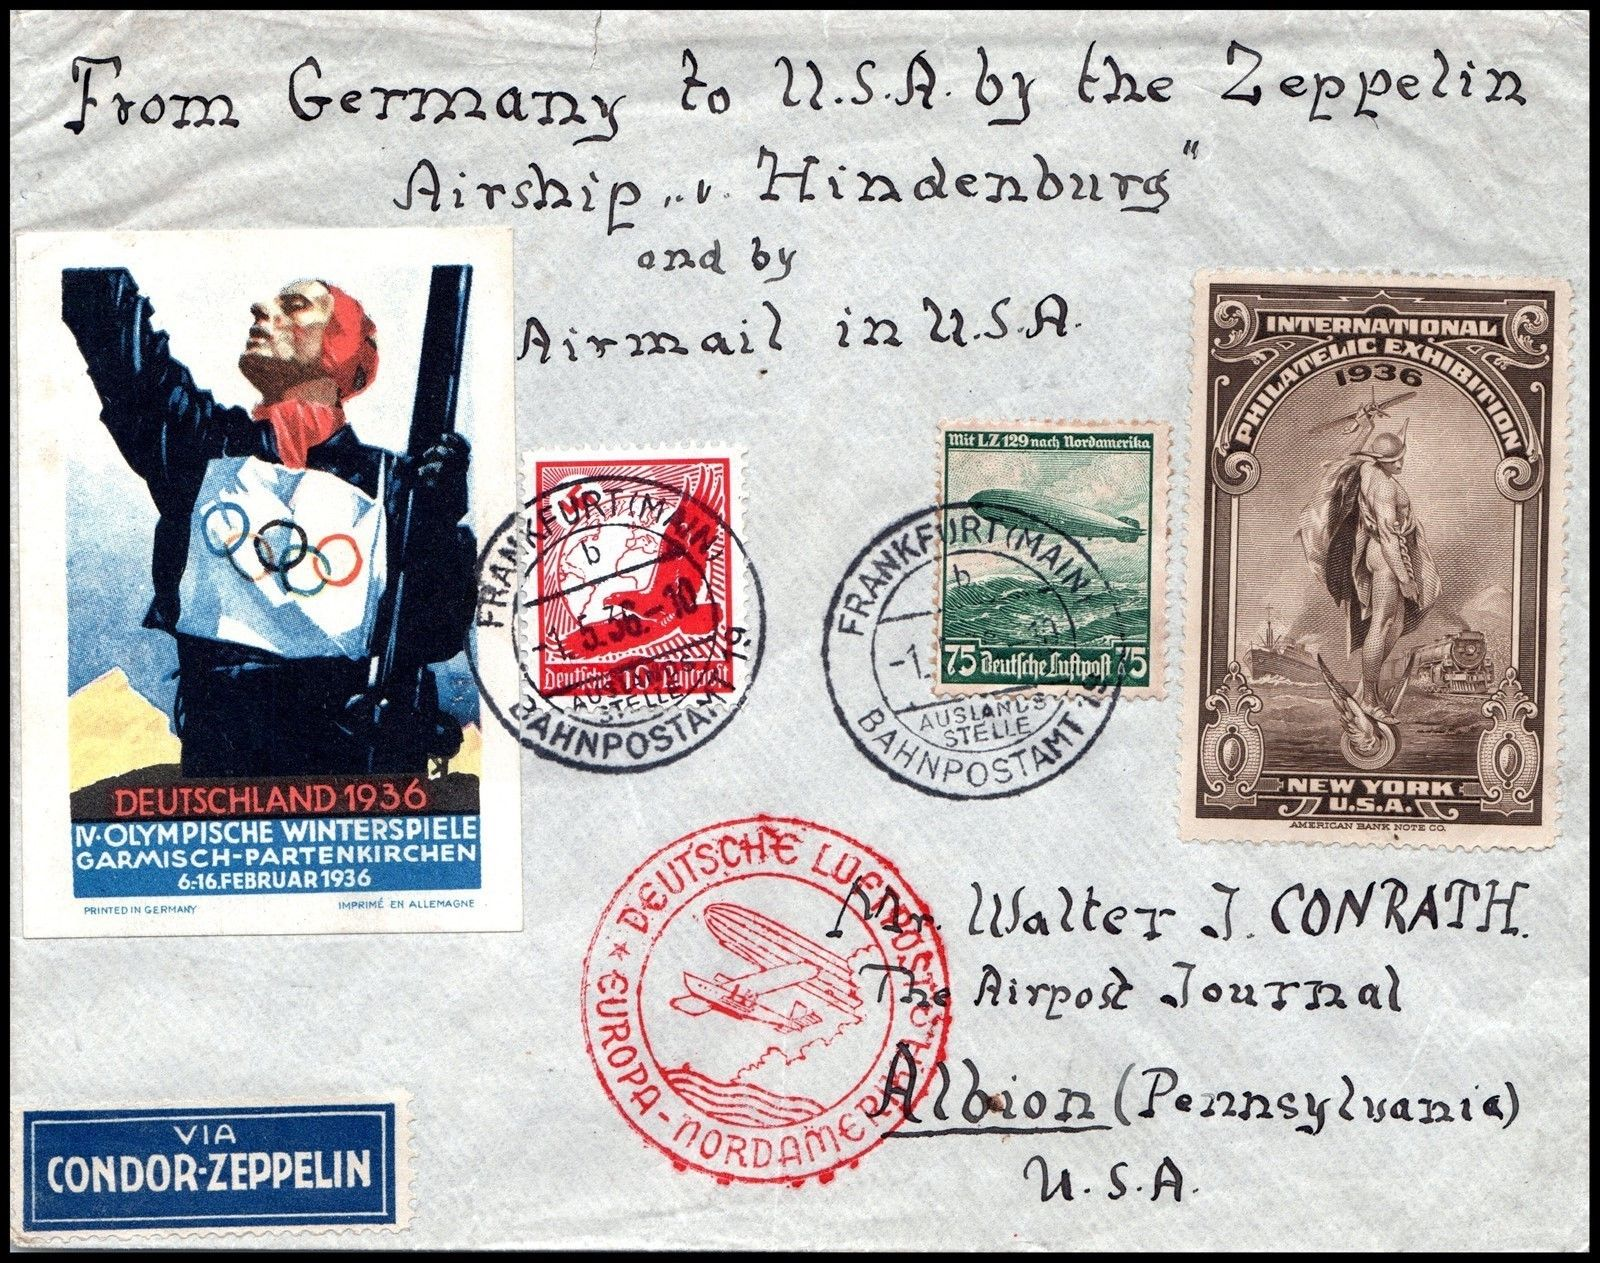 POSTER STAMPS AND LABELS OF THE OLYMPIC GAMES - 1936 Winter